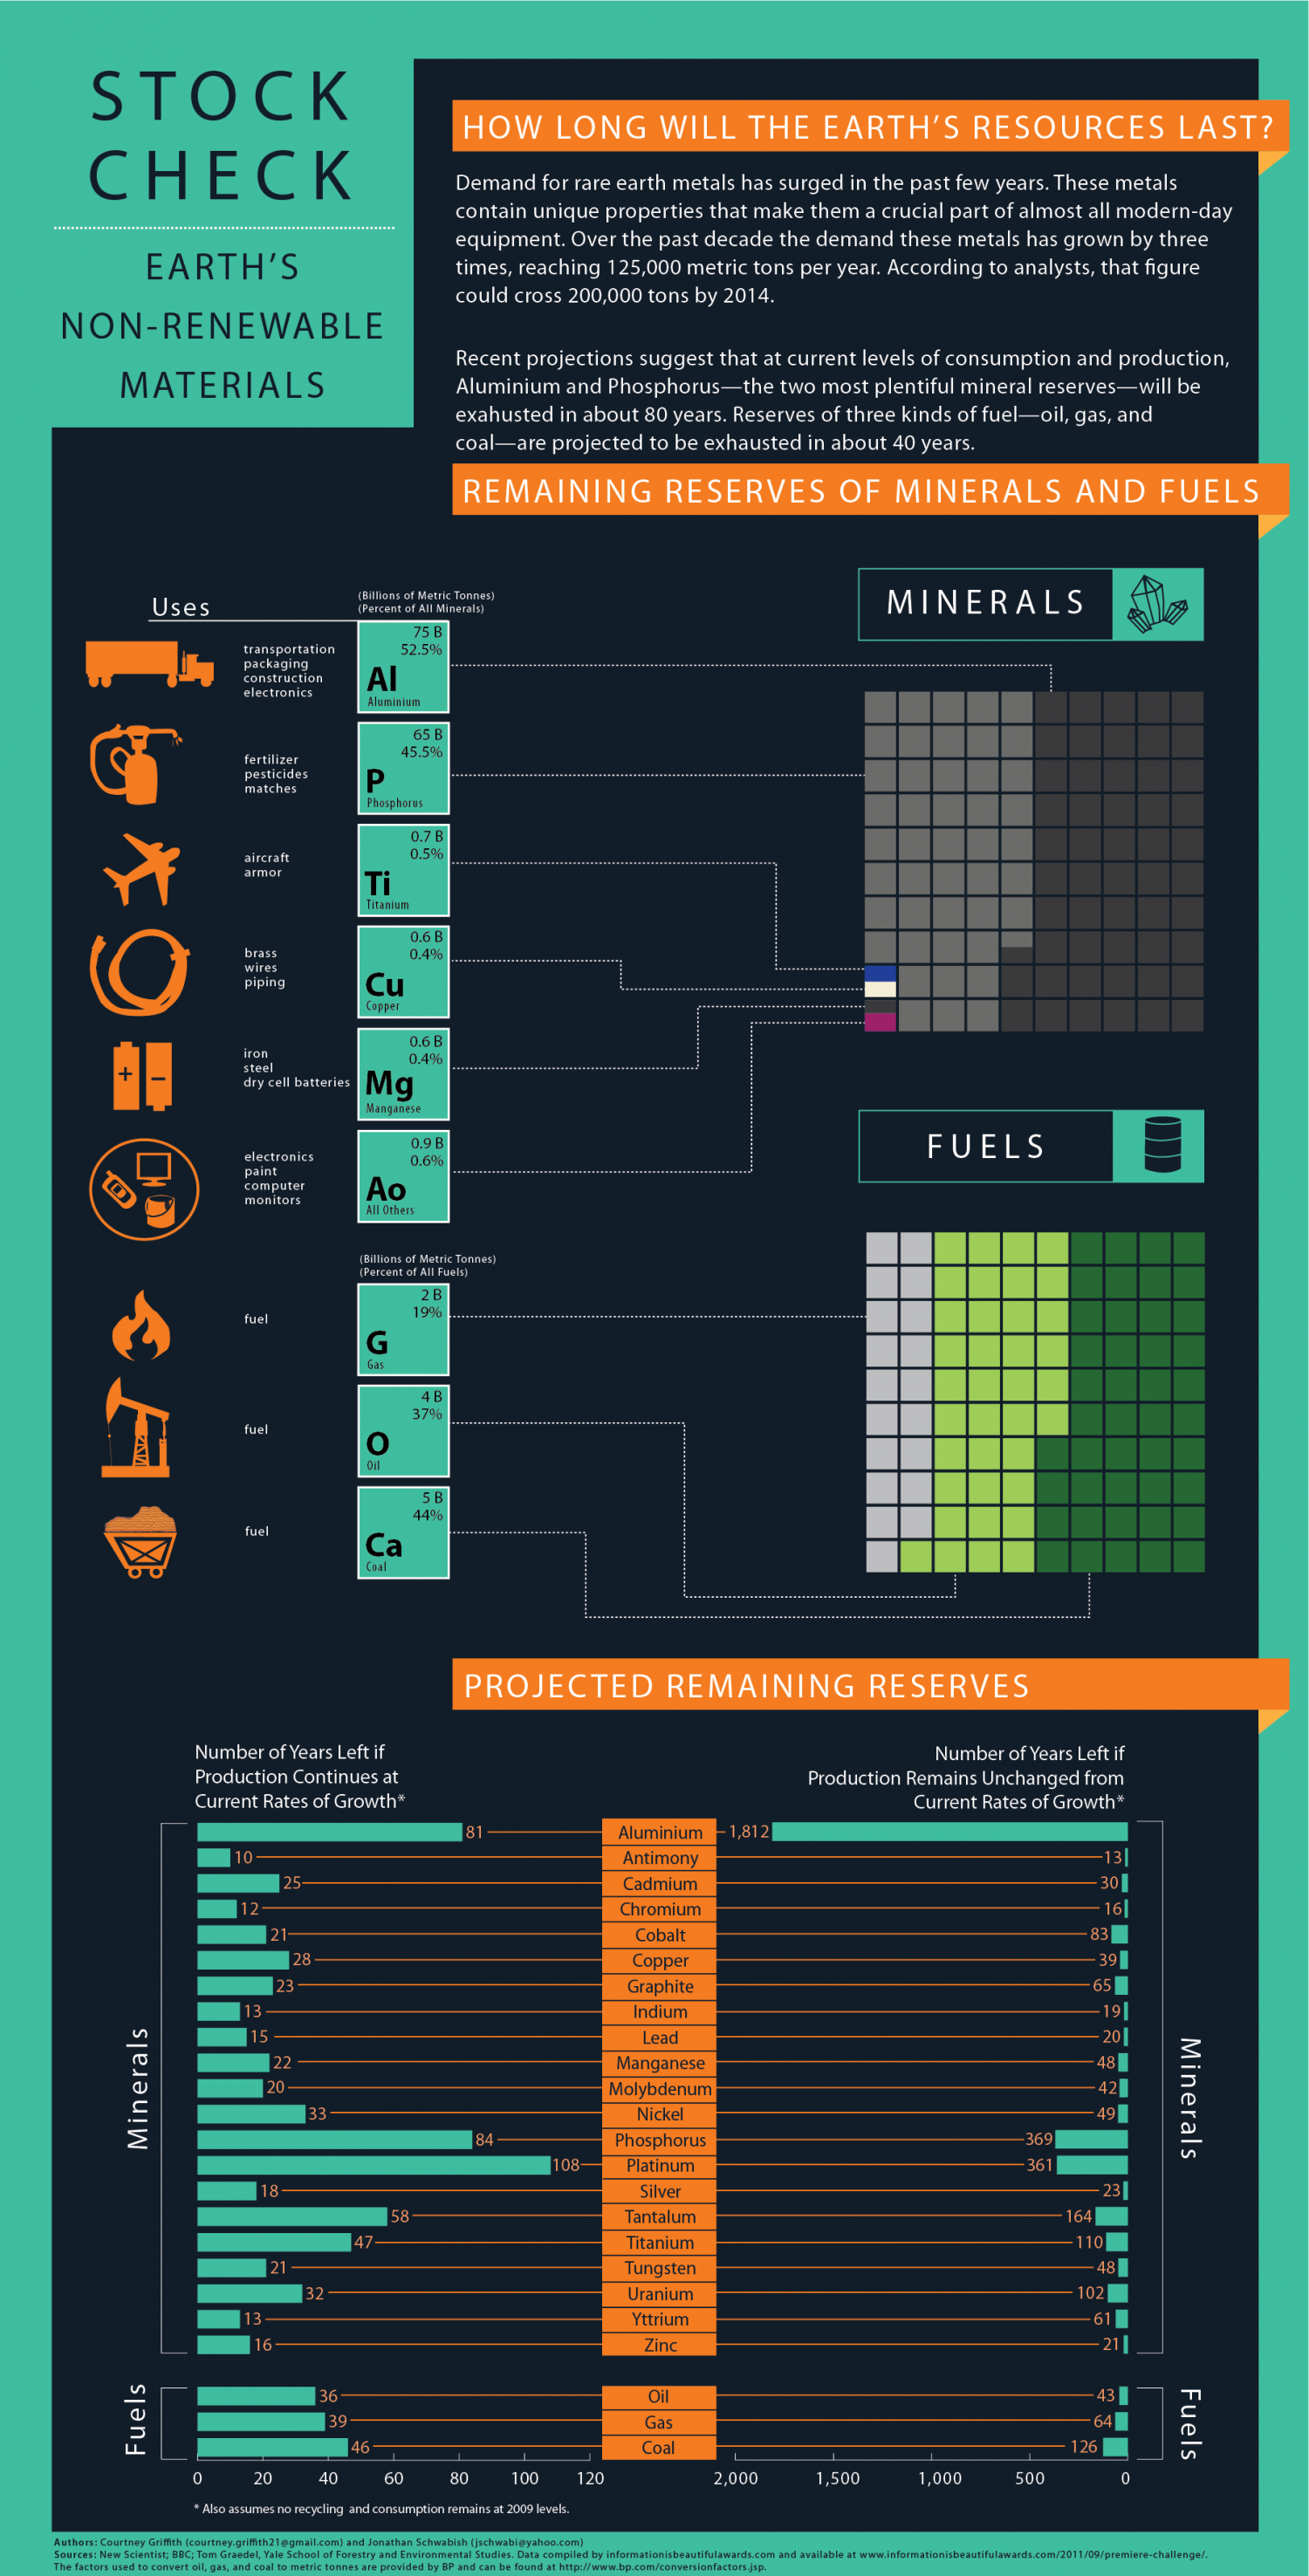 Stock Check: How Long Will the Earth's Resources Last? Infographic